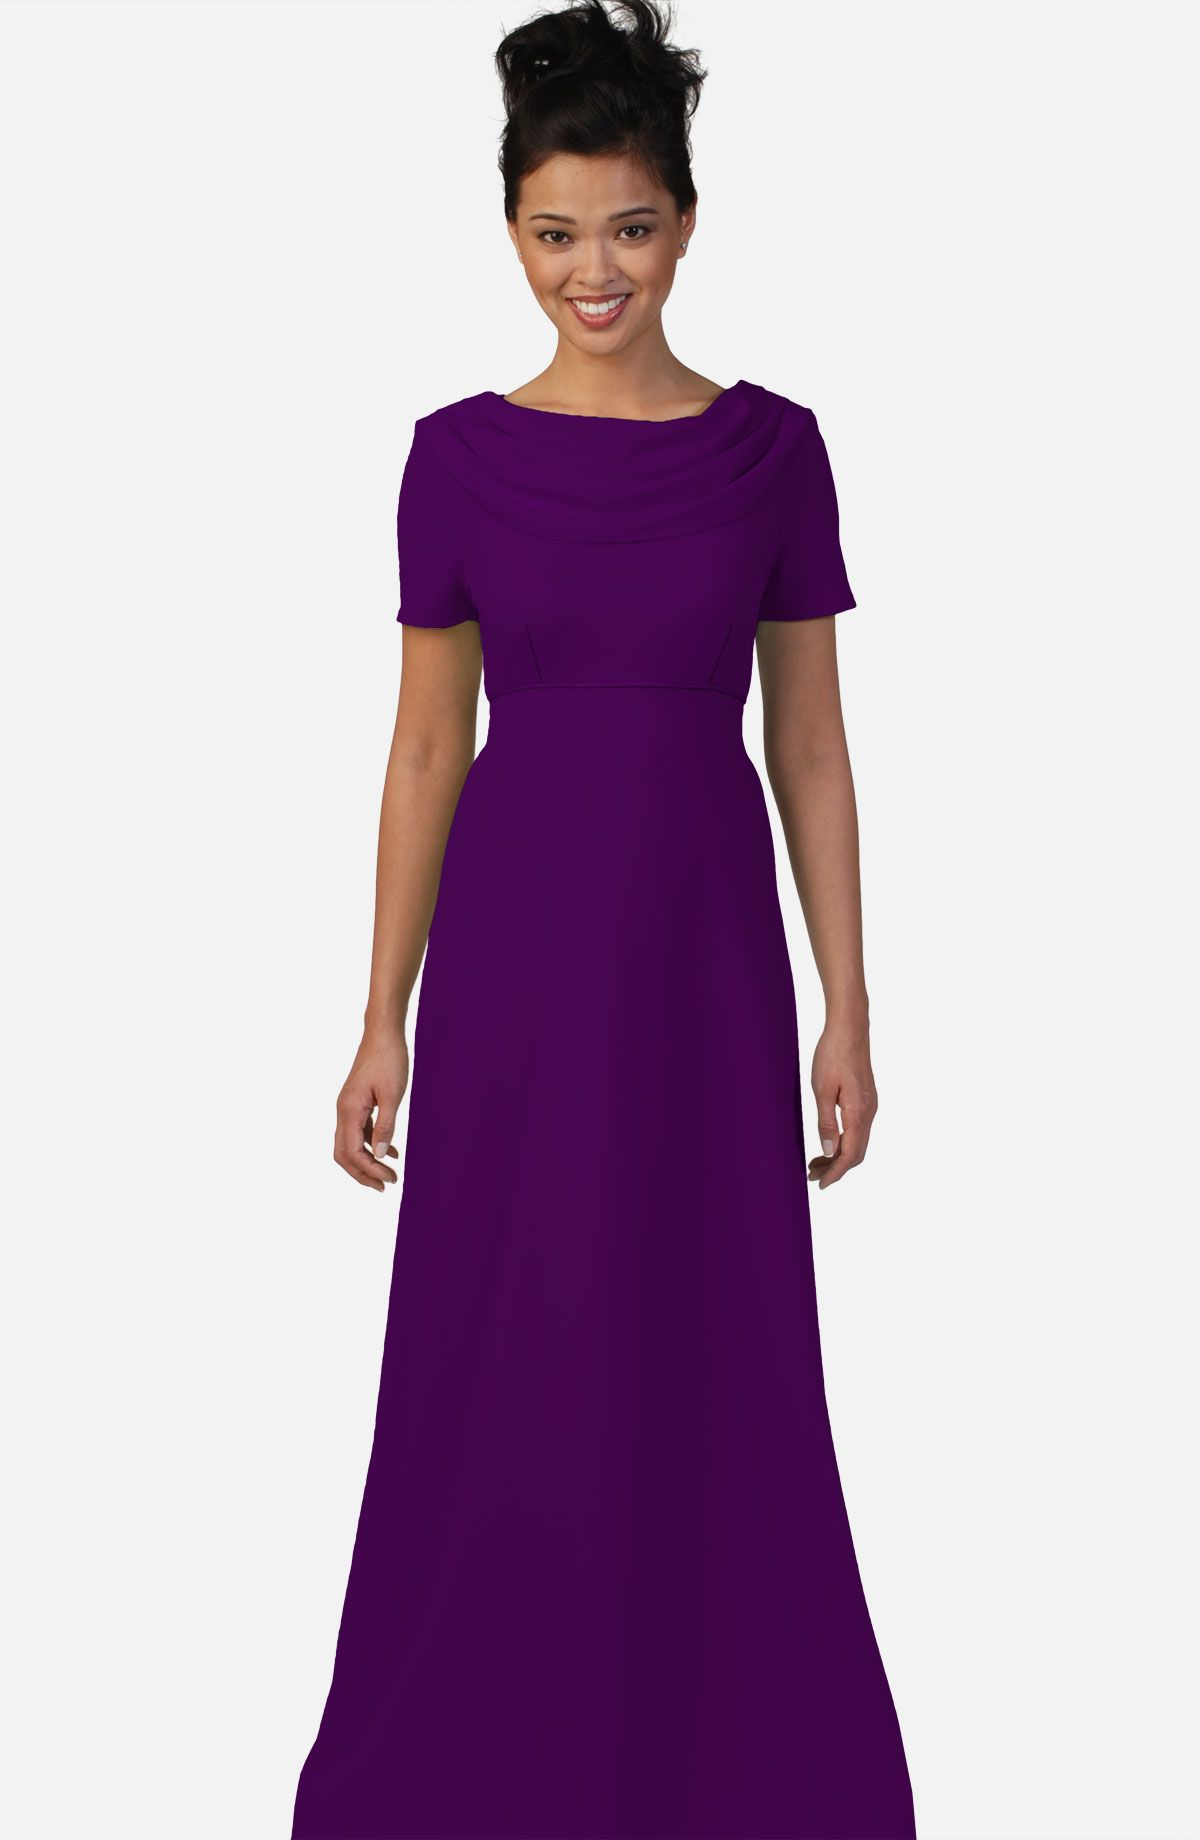 Dresses Empire Style Dresses Design Your Own Dress $58 - Style ...